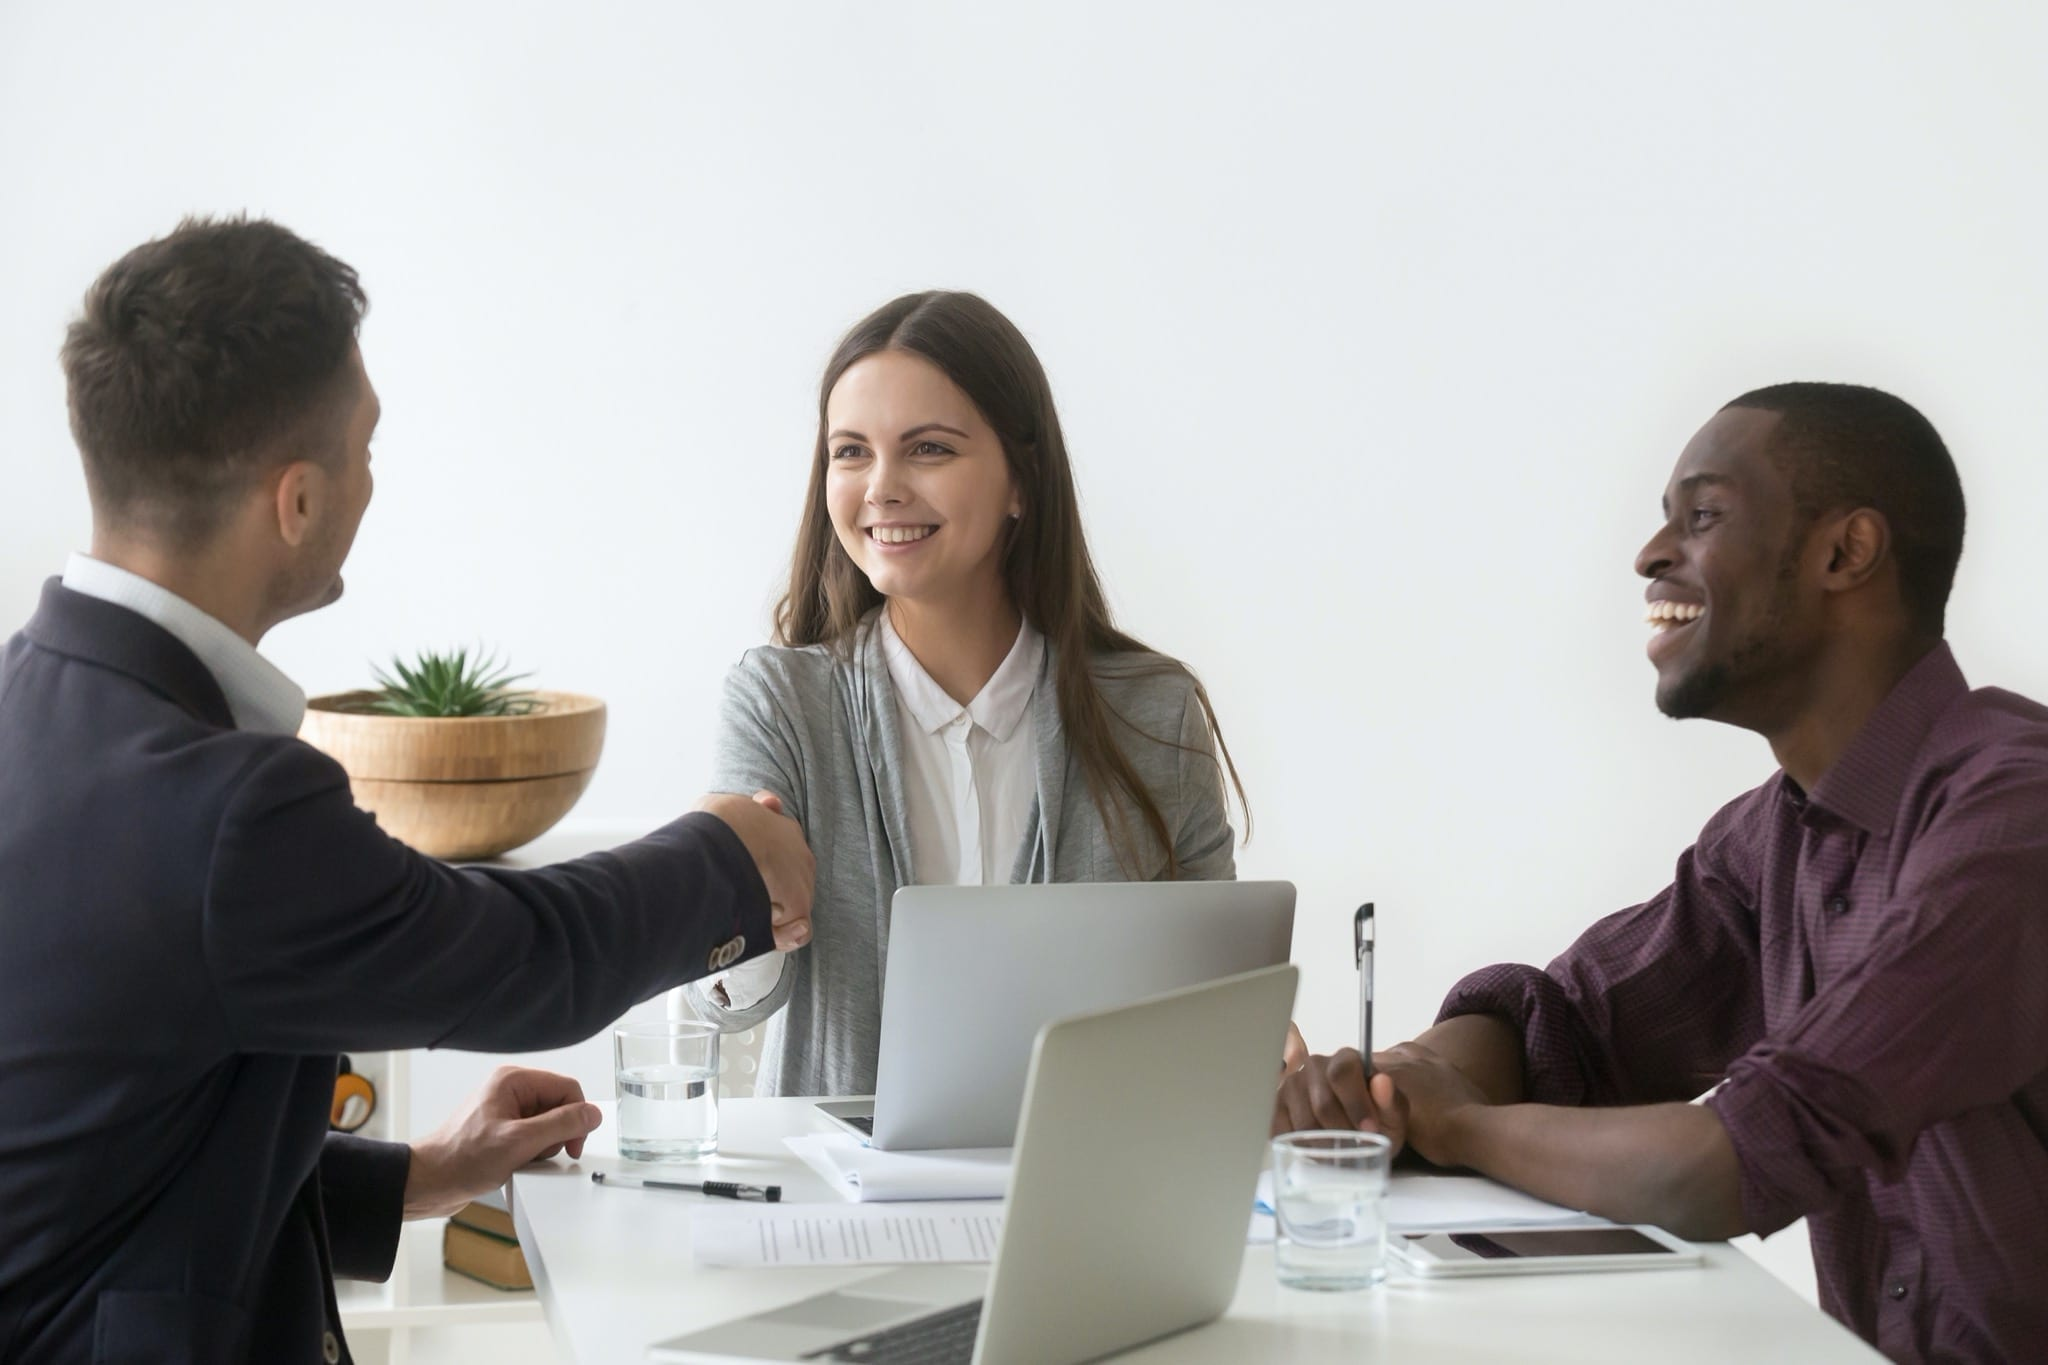 negocieri - Smiling businesswoman shaking hand of male partner at group meeting